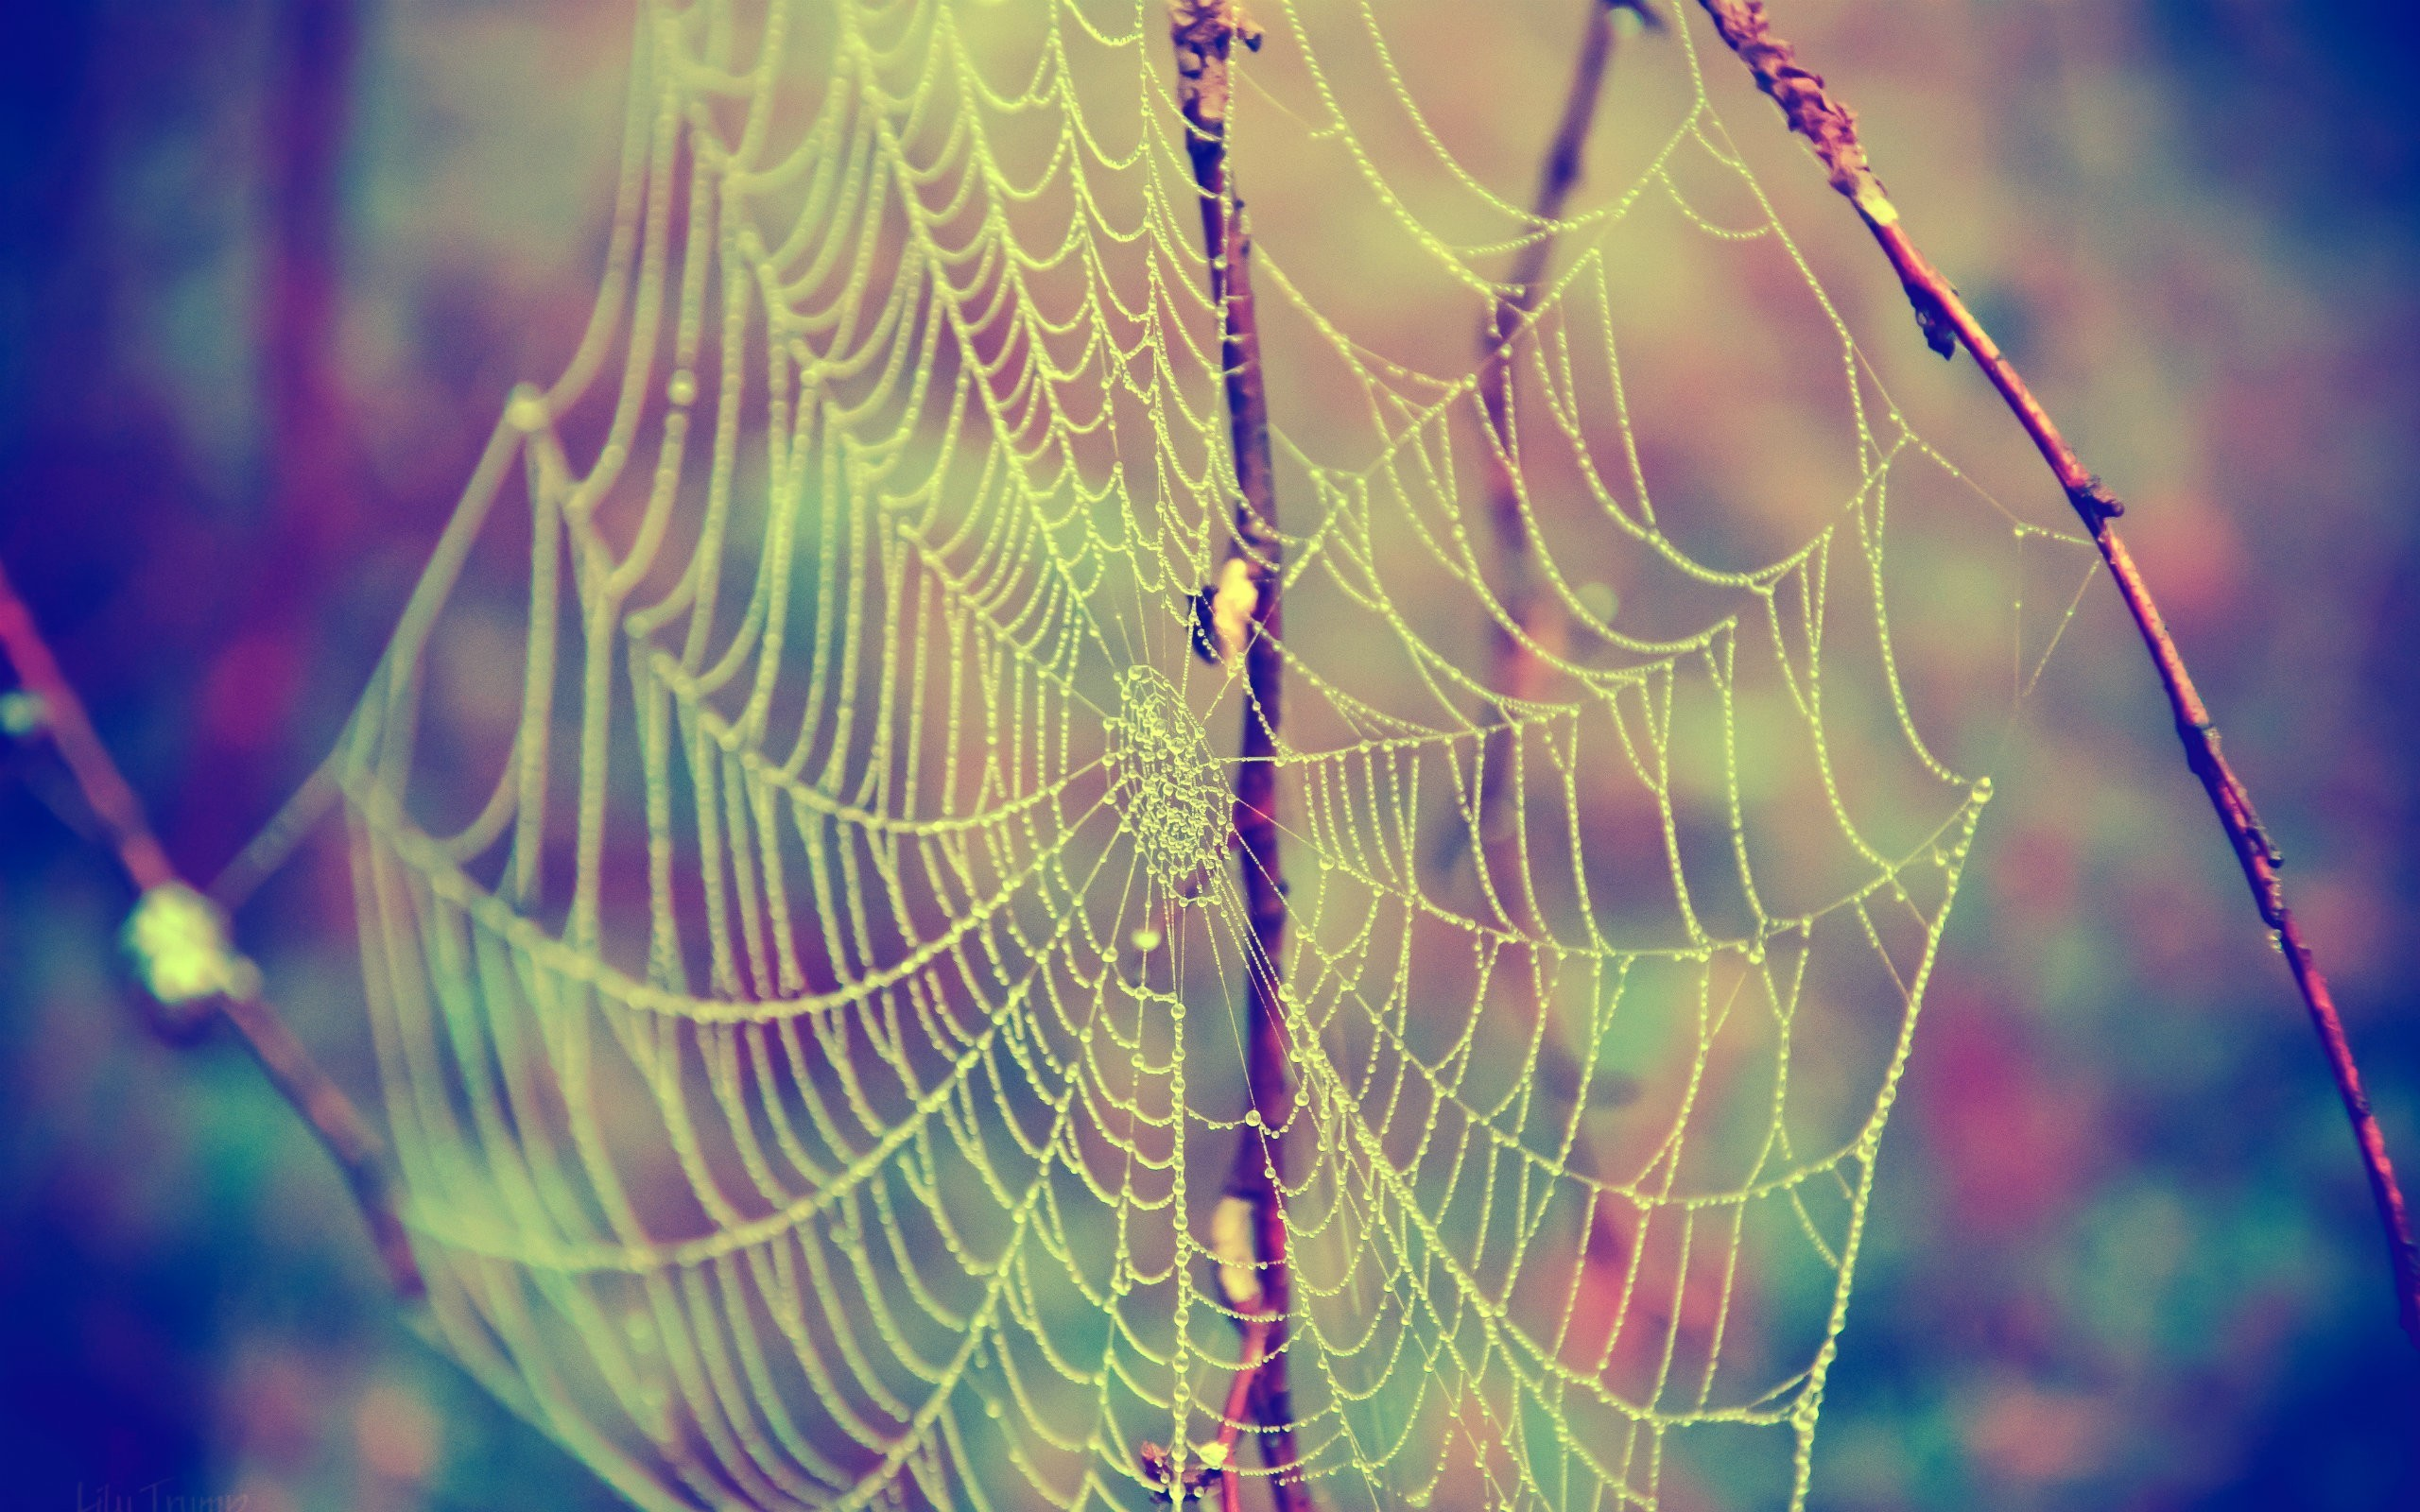 2560x1600 Nature insects web spider webs wallpaper